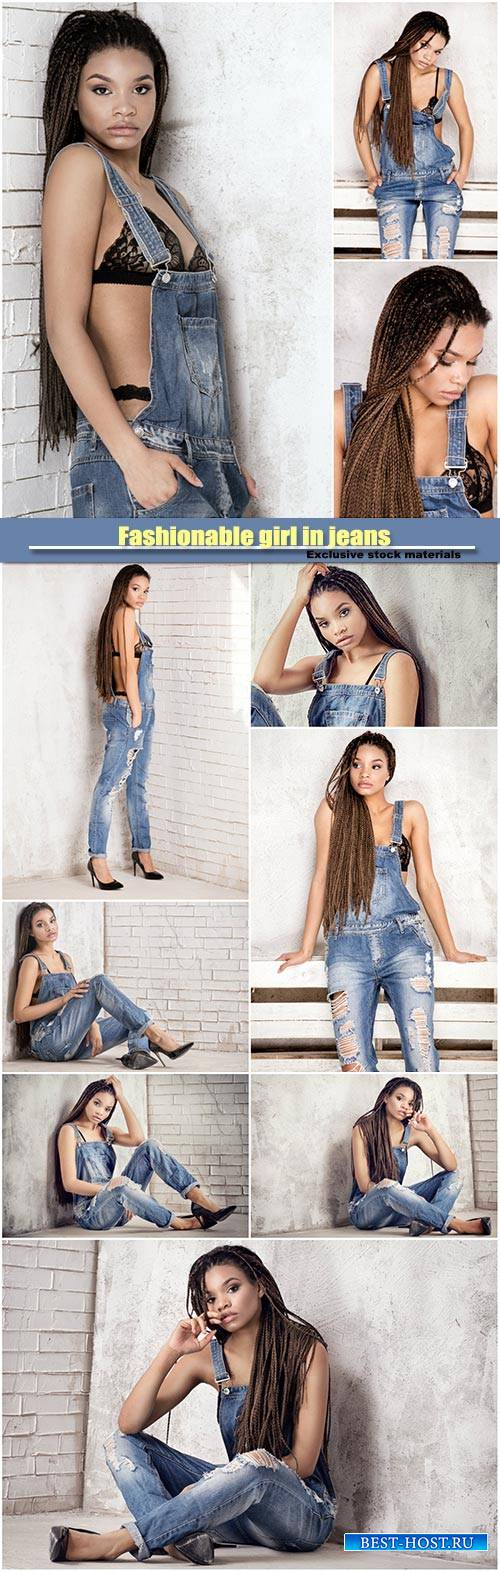 Fashionable girl in jeans